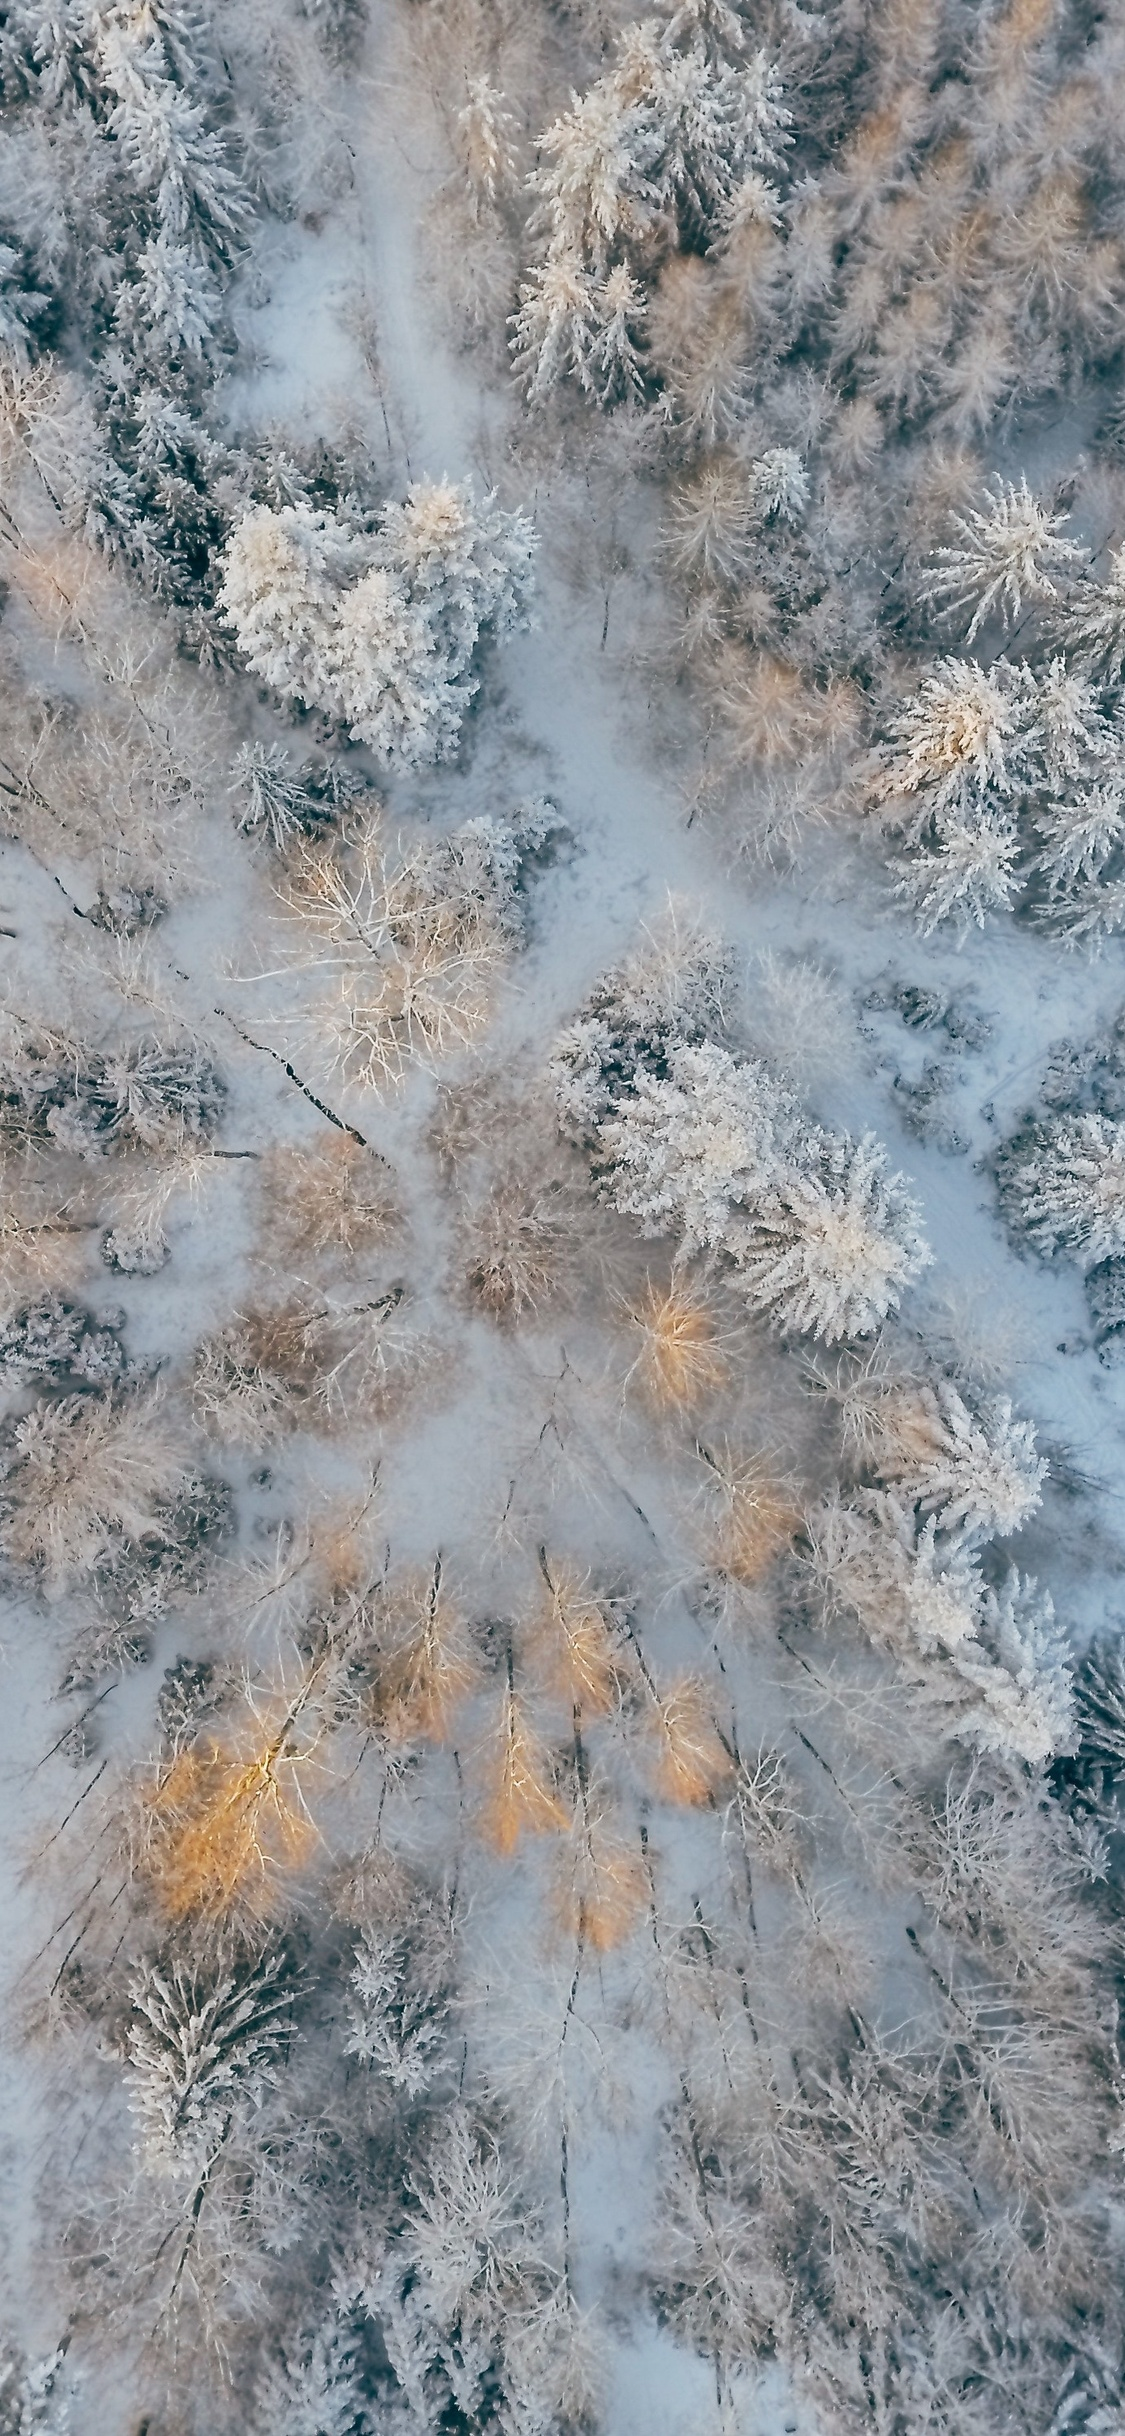 1125x2436 Aerial Short Of Cold Forest Snow Trees 4k Iphone Xs Iphone 10 Iphone X Hd 4k Wallpapers Images Backgrounds Photos And Pictures